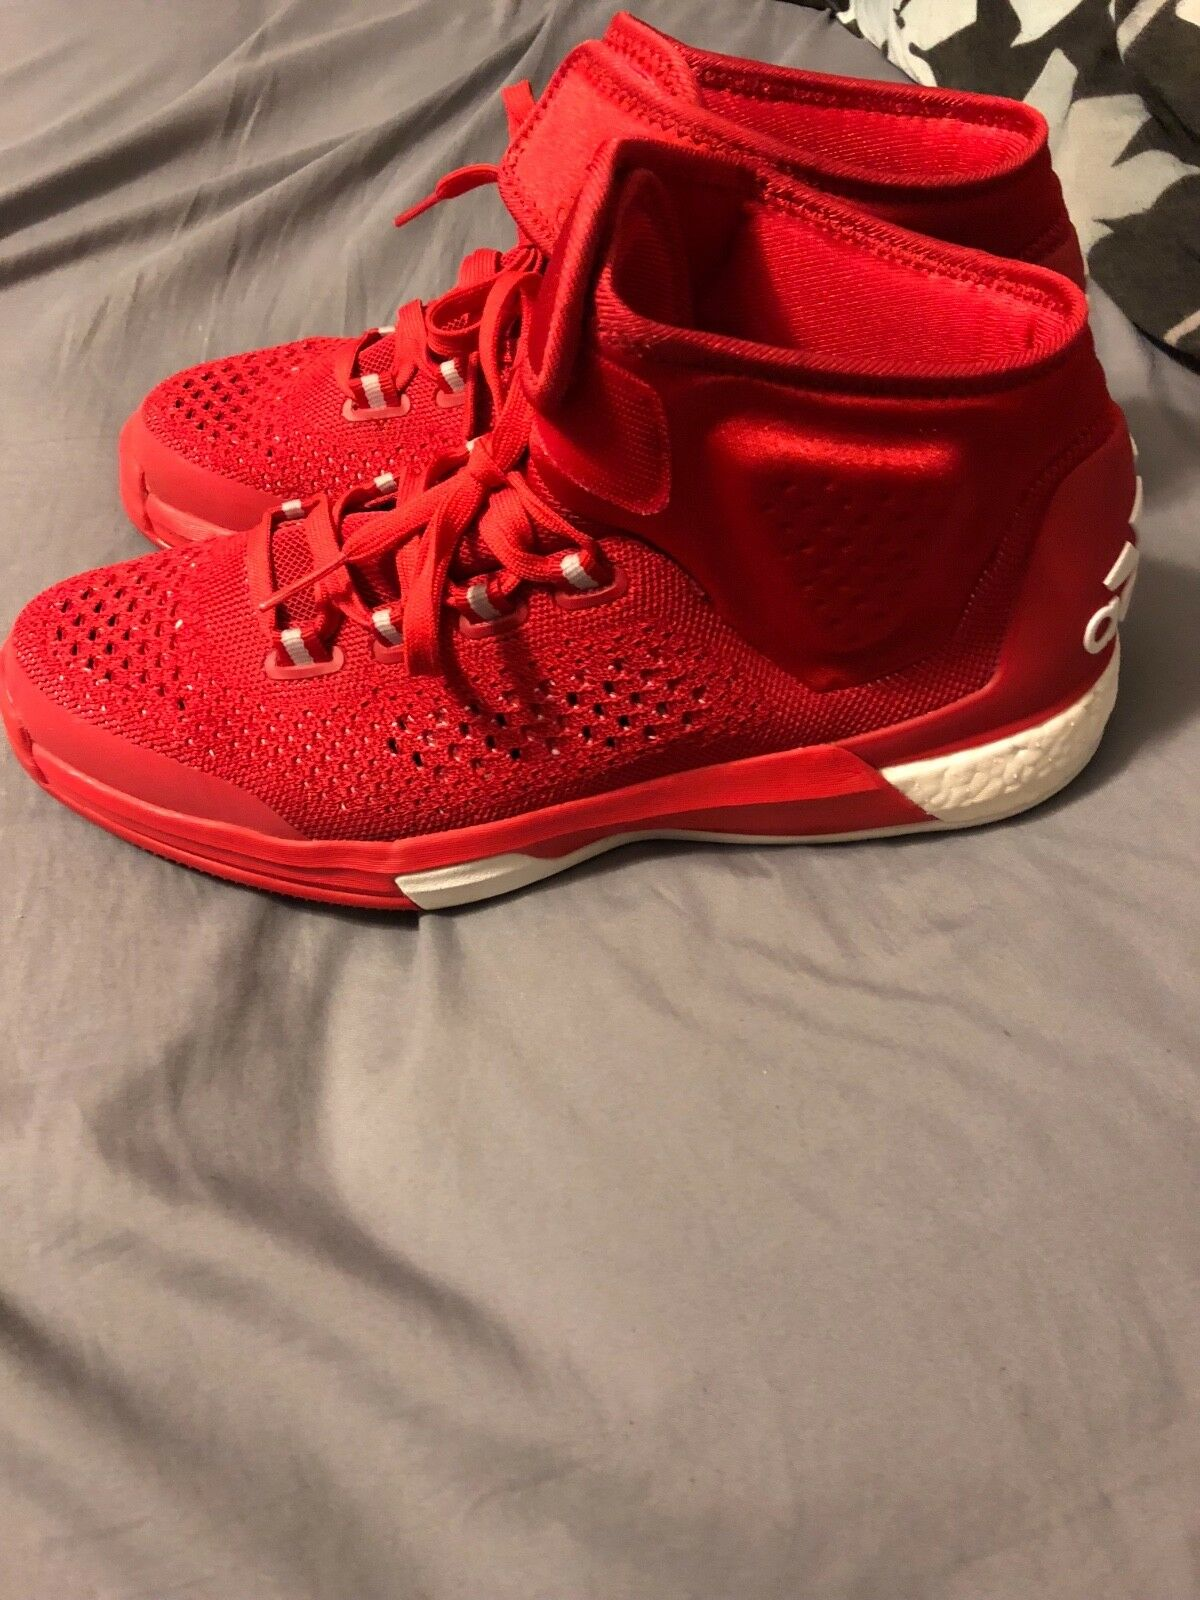 Men's adidas Crazy Light Boost Red, size 10. Great condition! Seasonal clearance sale